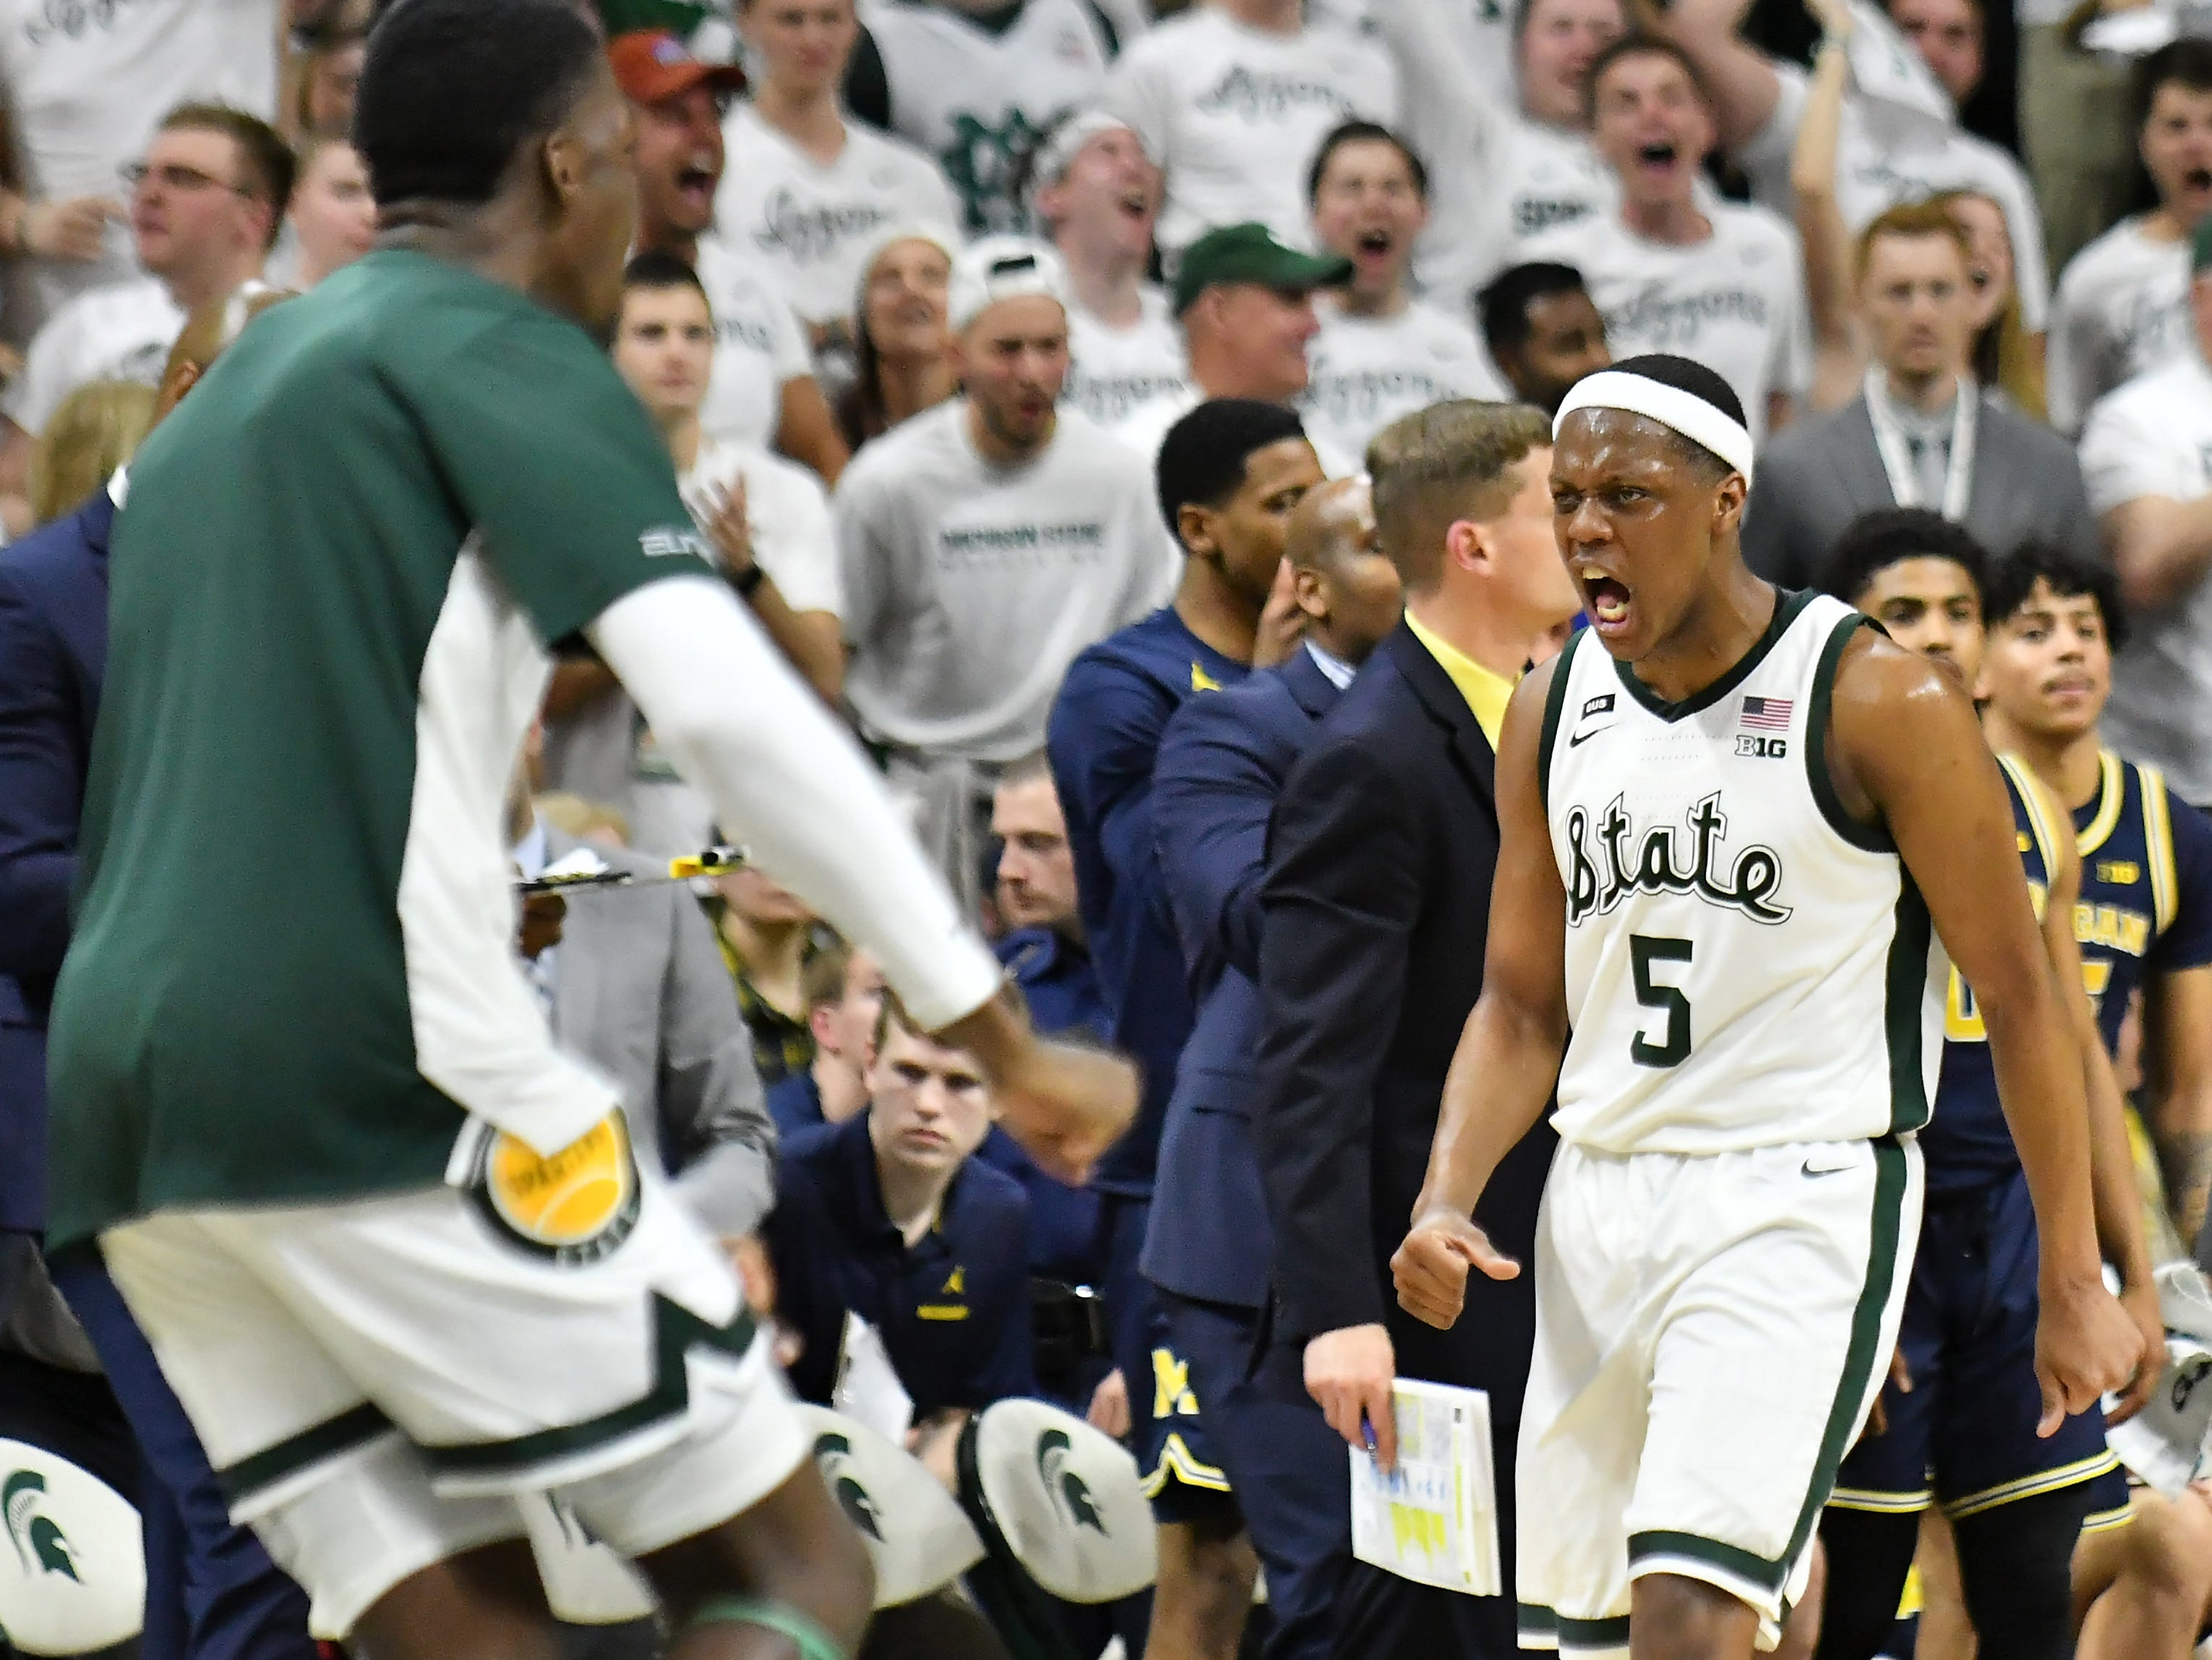 Michigan State guard Cassius Winston (5) reacts in the second half.   Michigan vs. Michigan State at the Breslin Center in East Lansing, Mich. on March 9, 2019.  Michigan State wins, 75-63. (Robin Buckson / Detroit News)